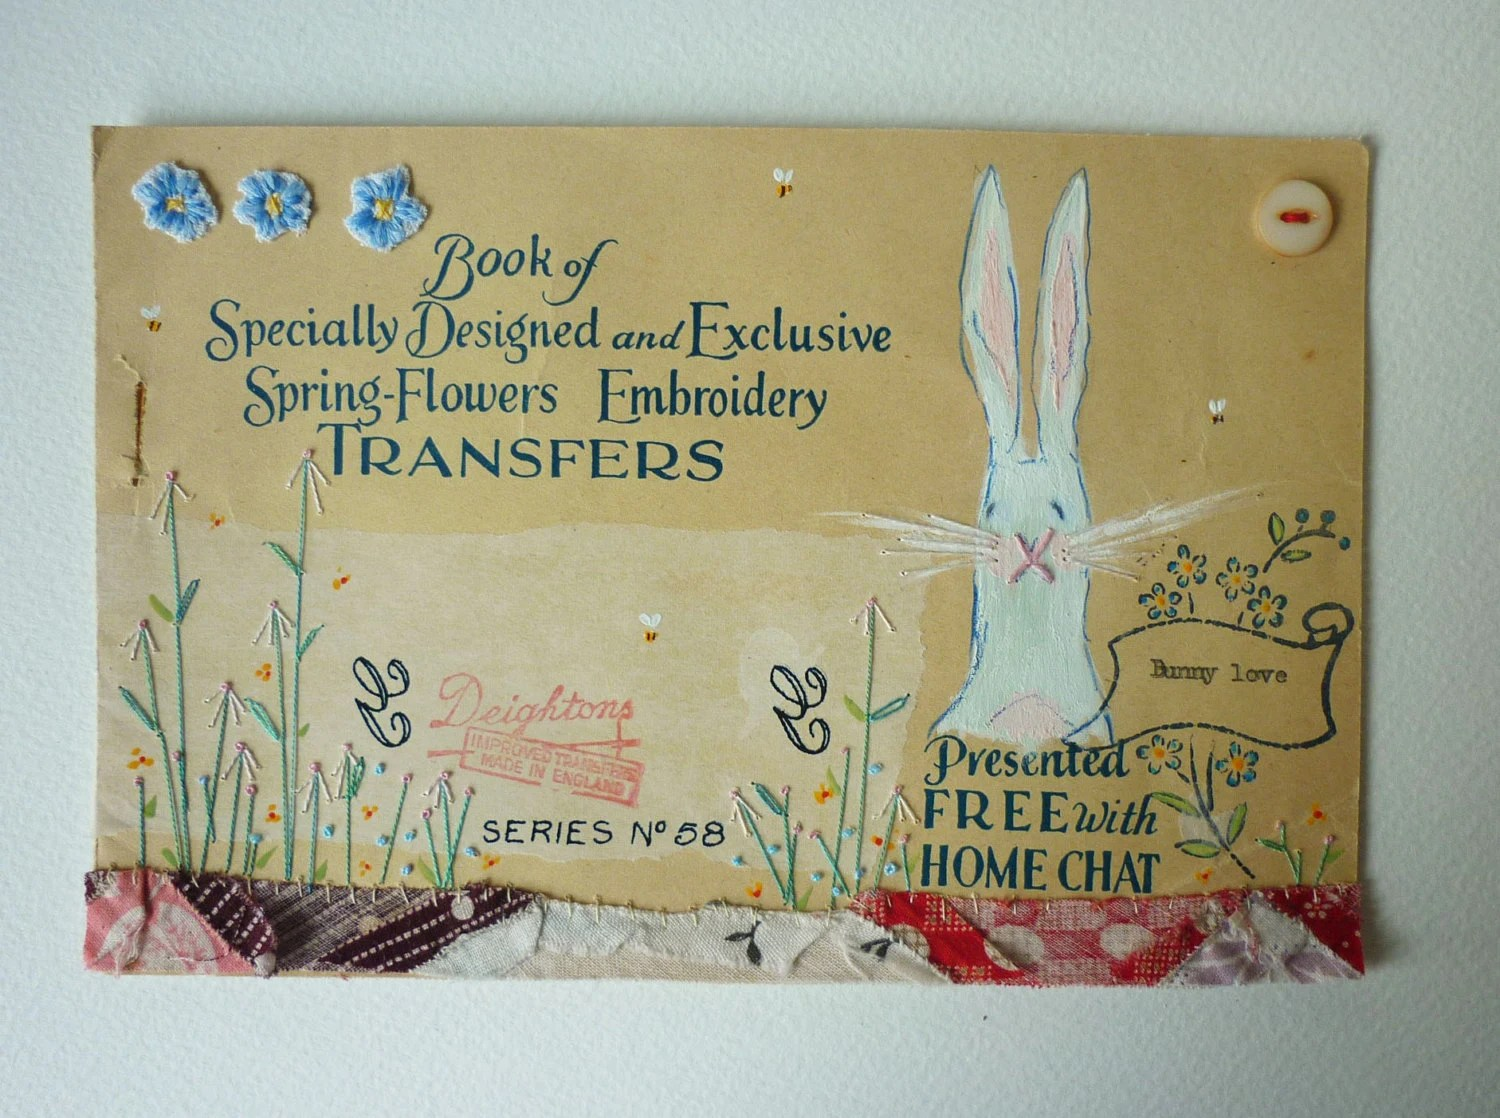 Original mail art - mixed media artwork on vintage paper : bunny love